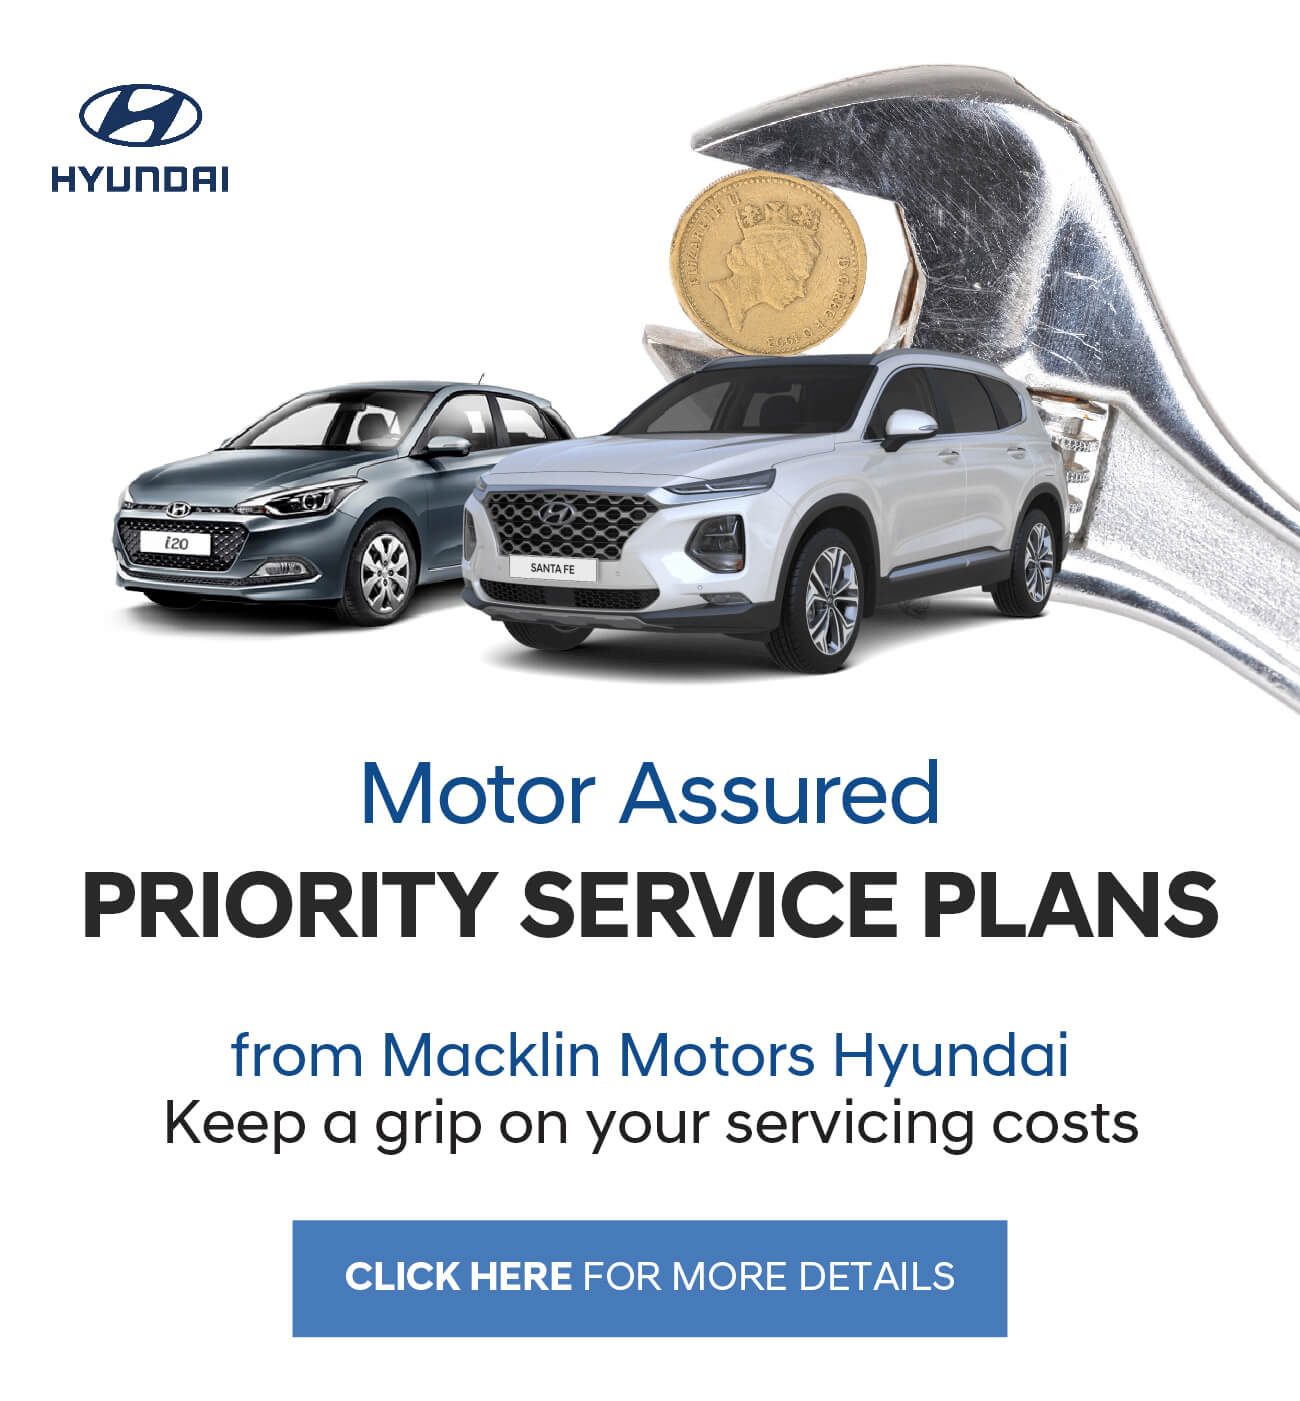 Hyundai Macklin Motors Priority Service Offer